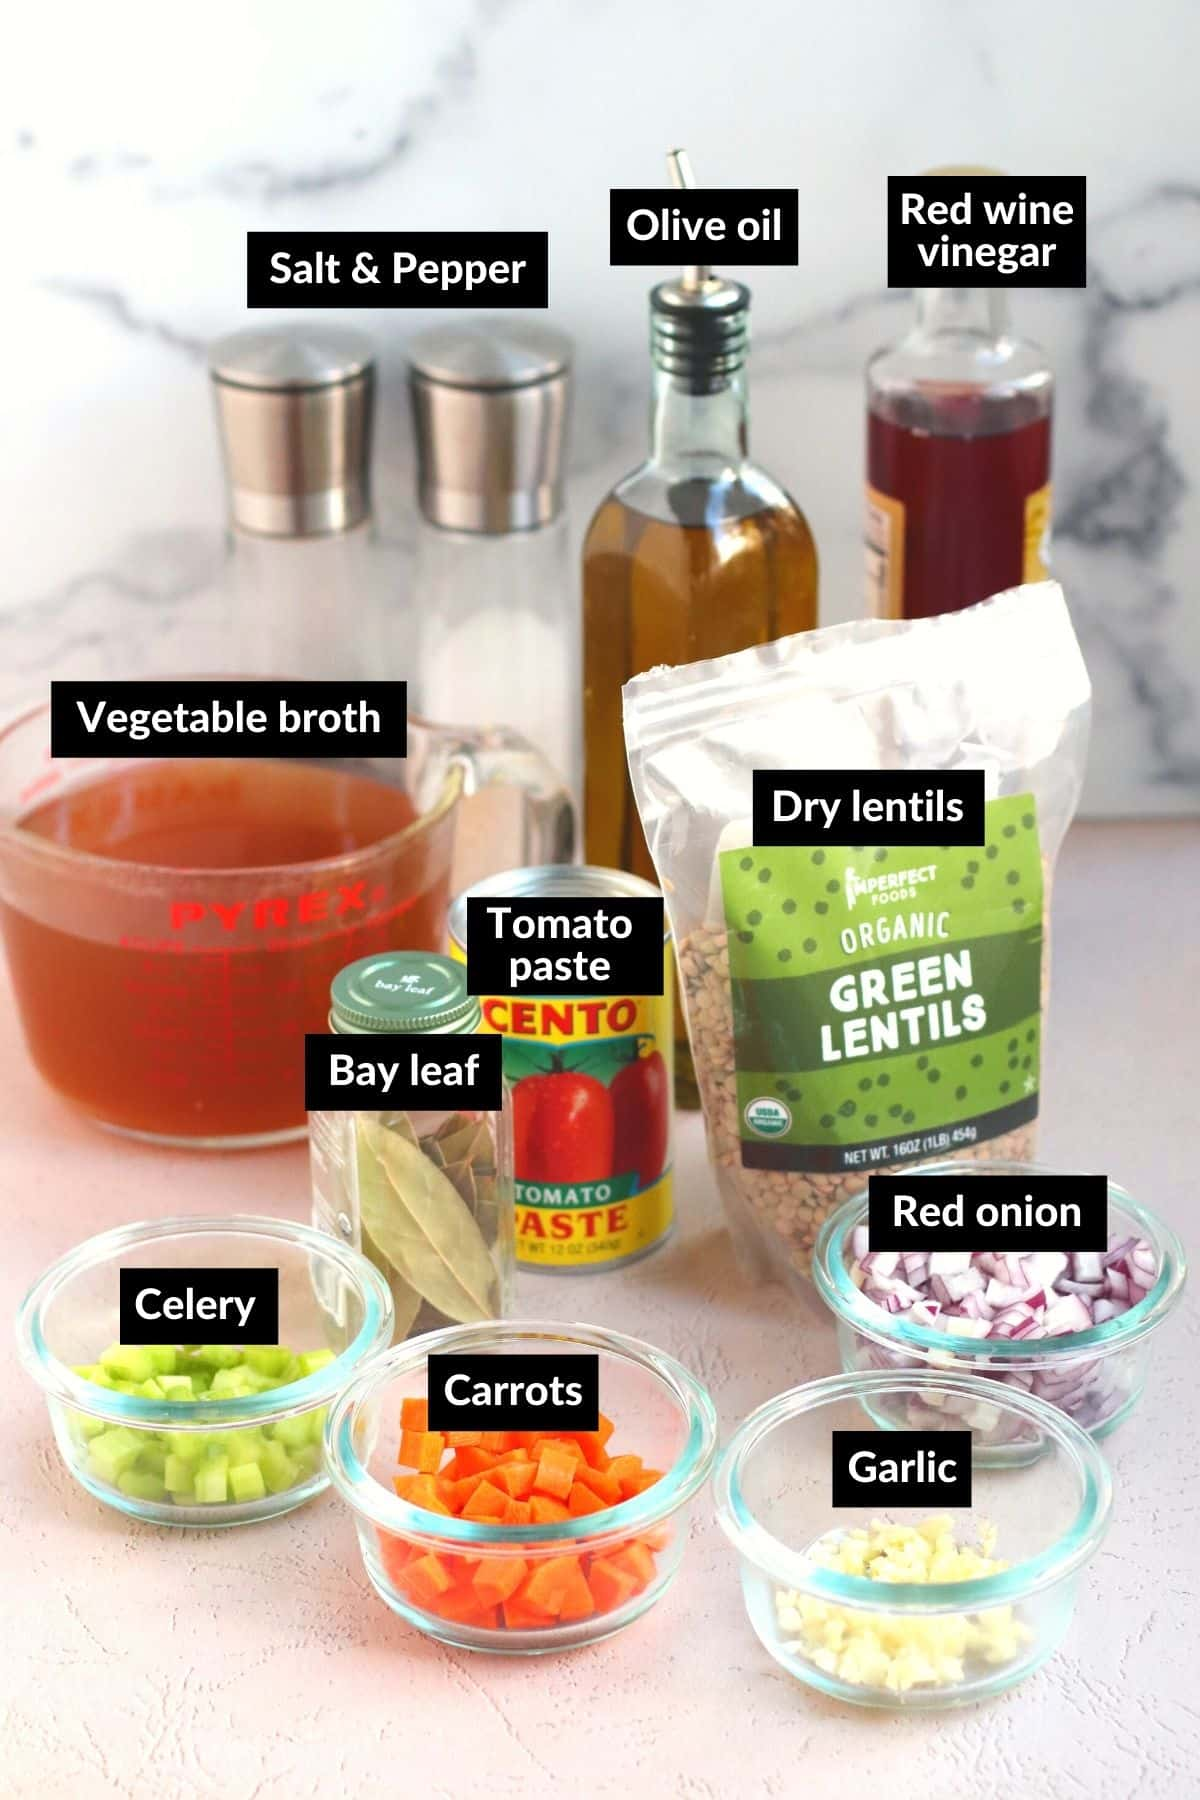 Ingredients needed to make this recipe